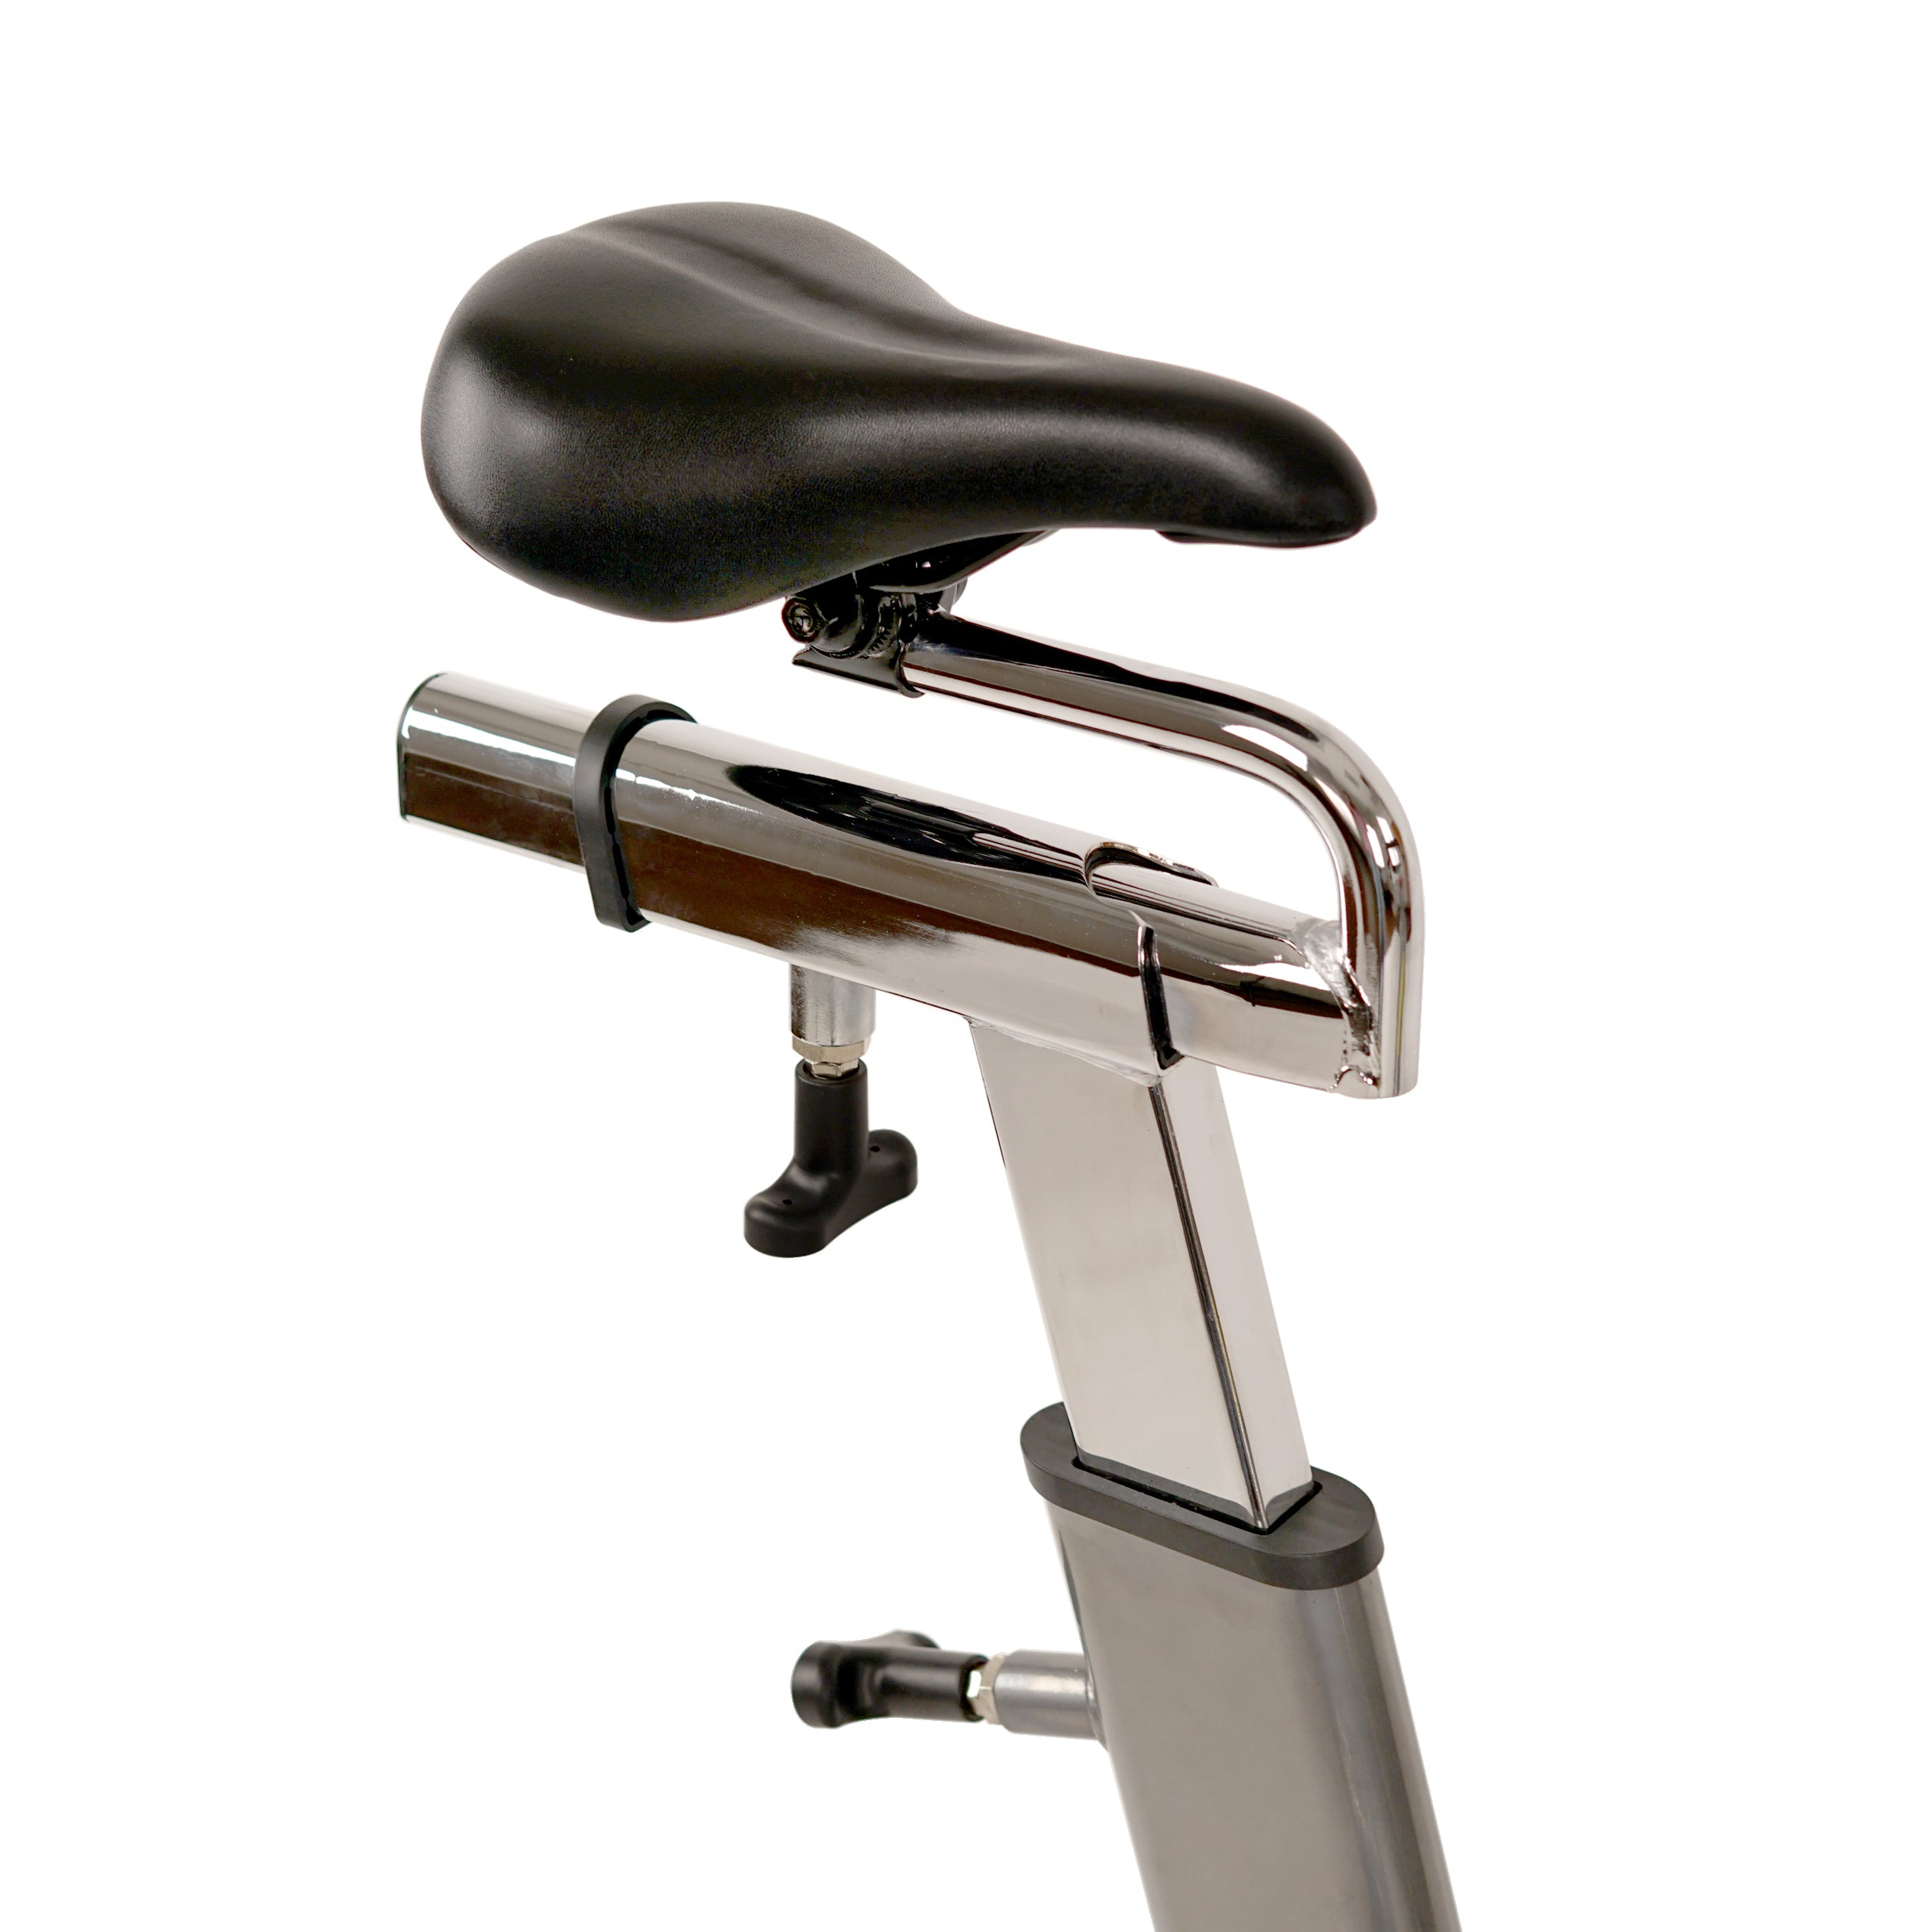 sunny-health-fitness-bikes-48.5lb-flywheel-chain-drive-commercial-indoor-cycling-exercise-bike-SF-B1516-seat